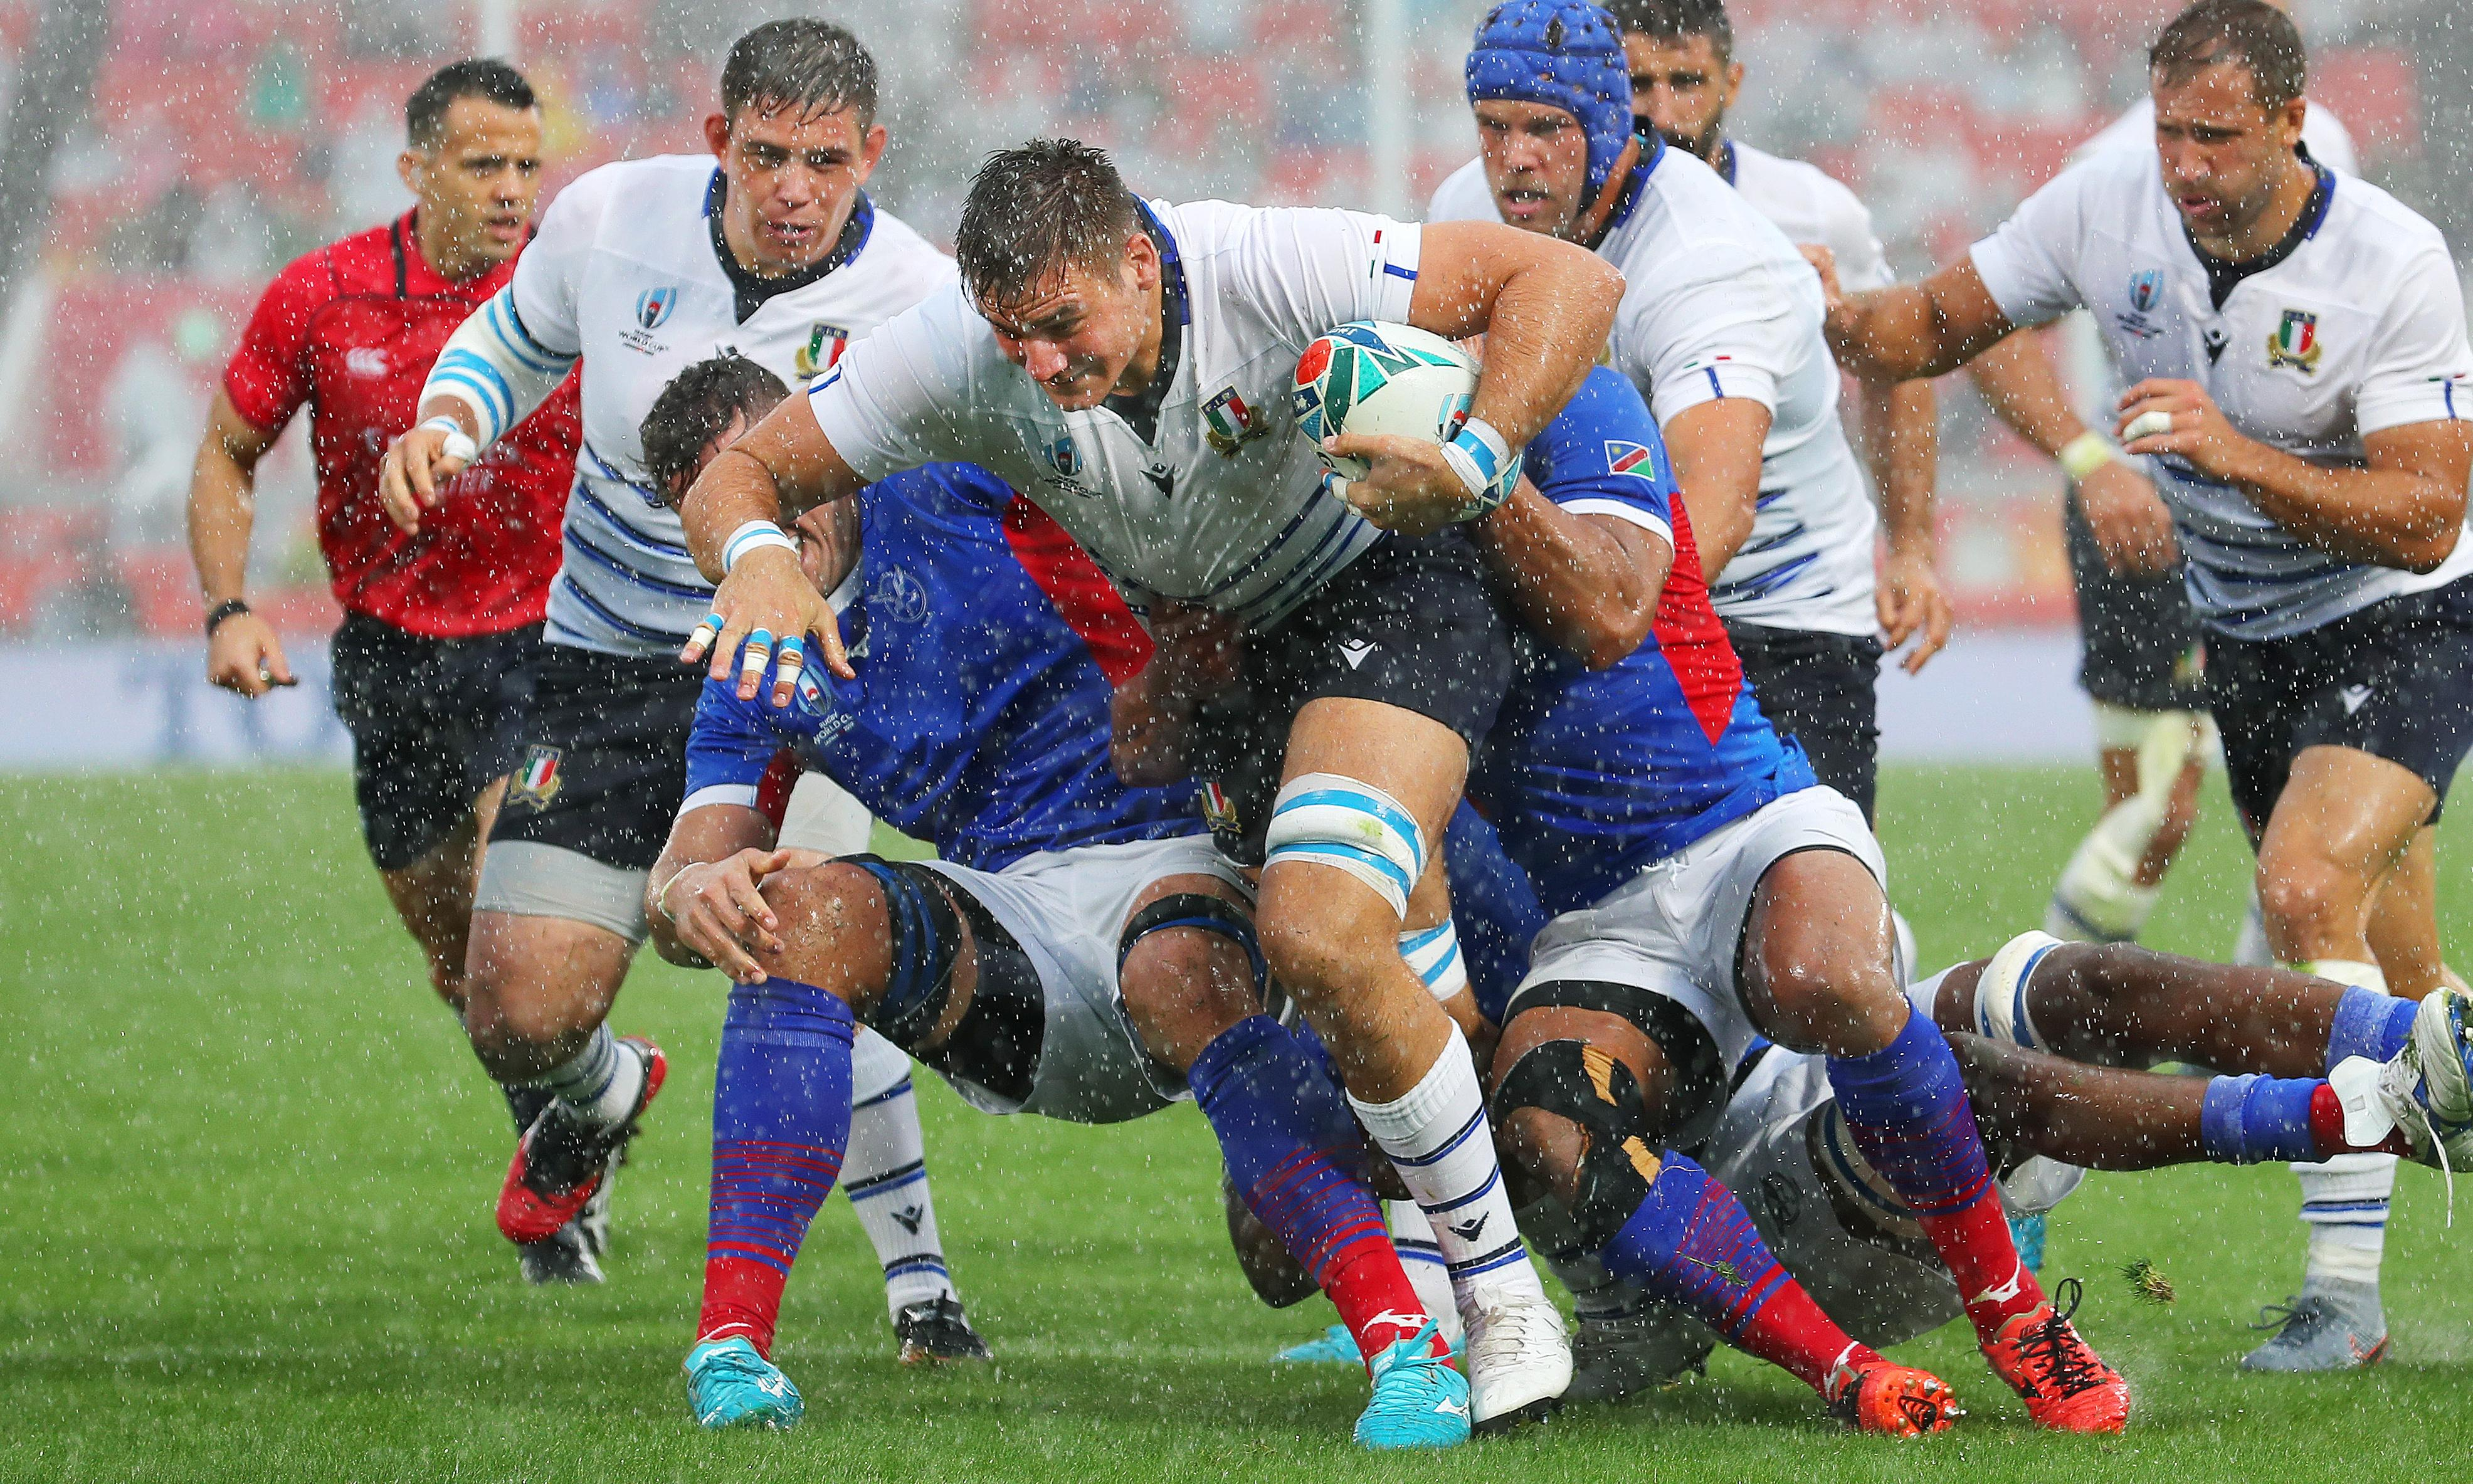 Italy overcome early scare to beat spirited Namibia in Rugby World Cup